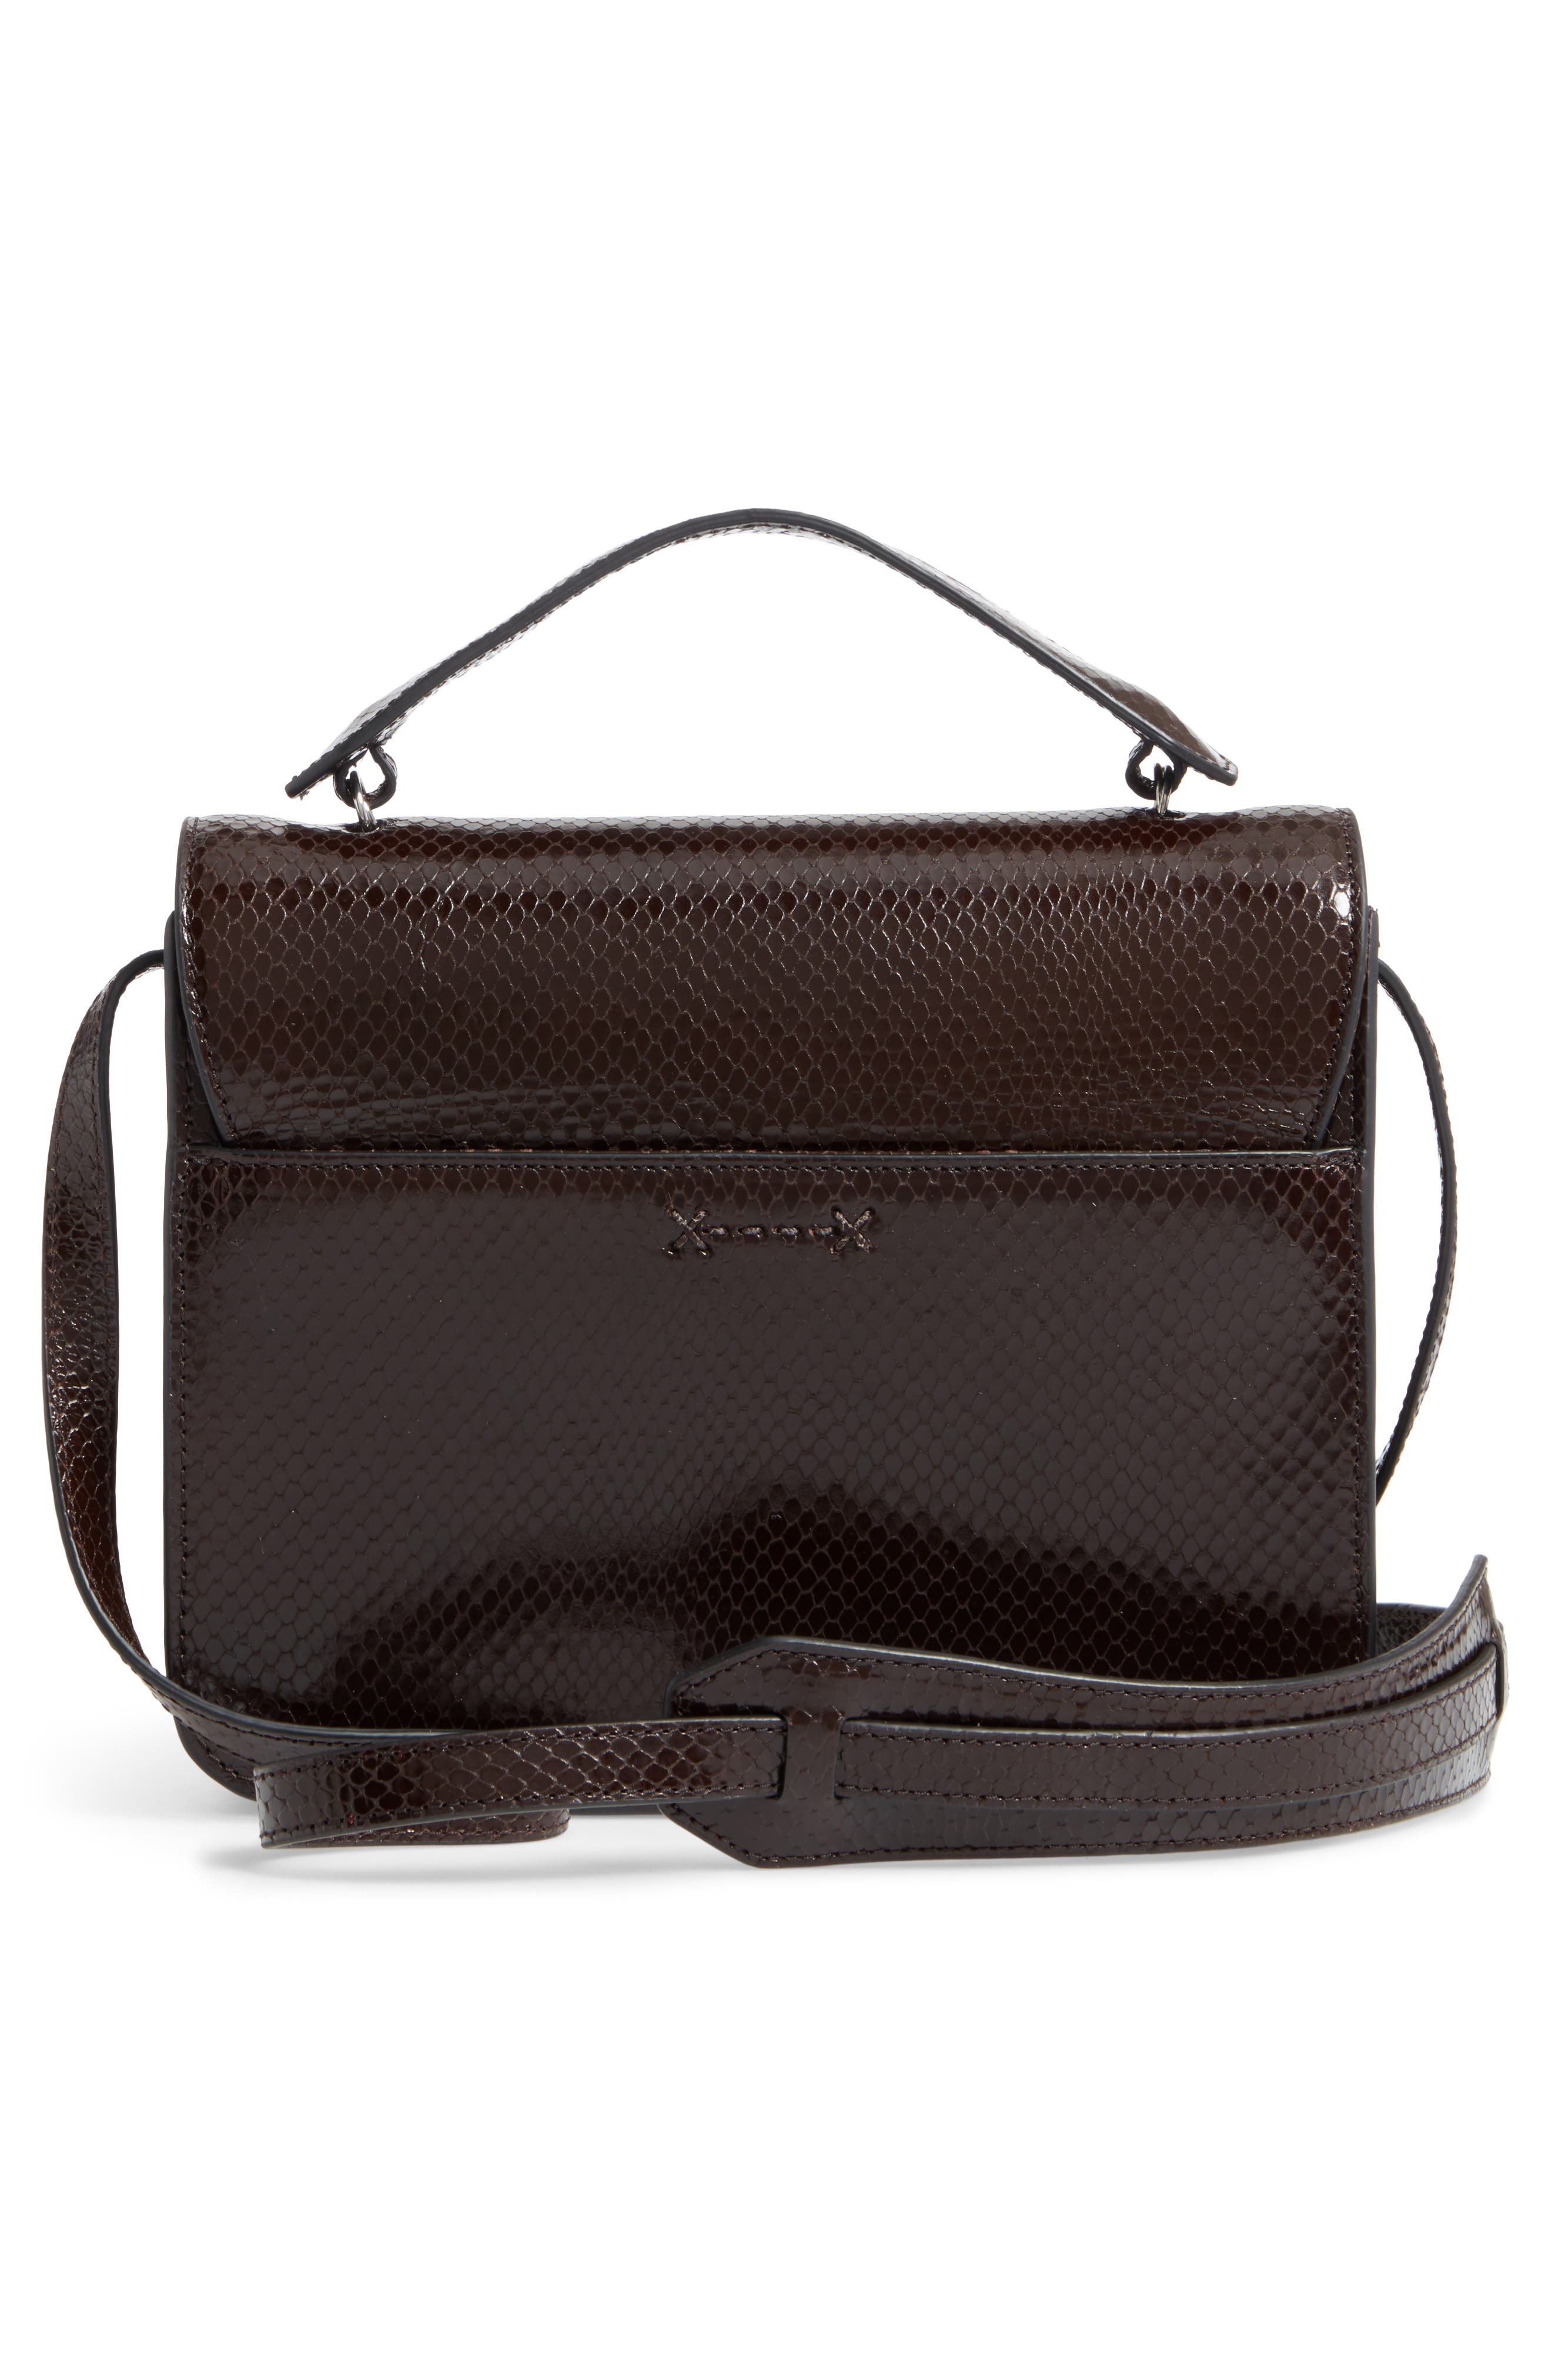 Eloise Genuine Calf Hair & Leather Shoulder Bag,                             Alternate thumbnail 2, color,                             Chocolate